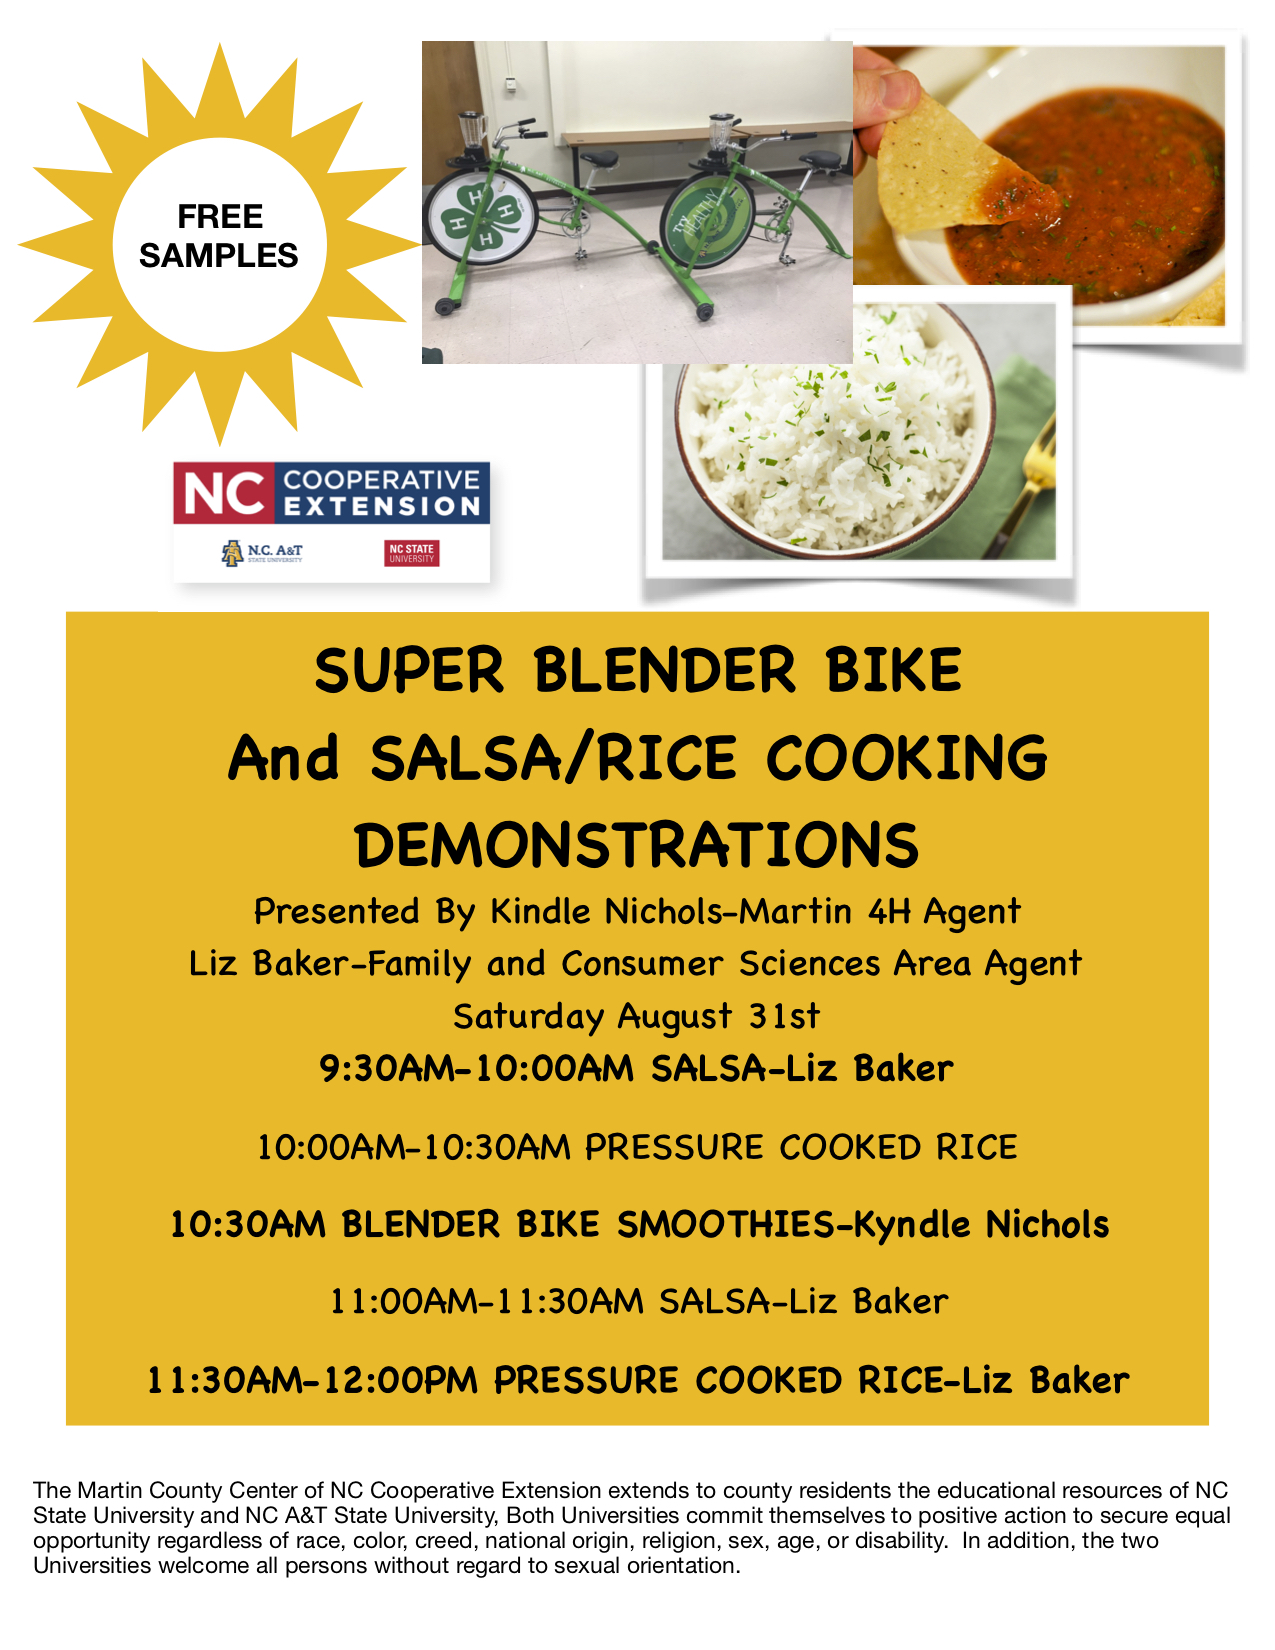 Image of Food Demonstration Flier